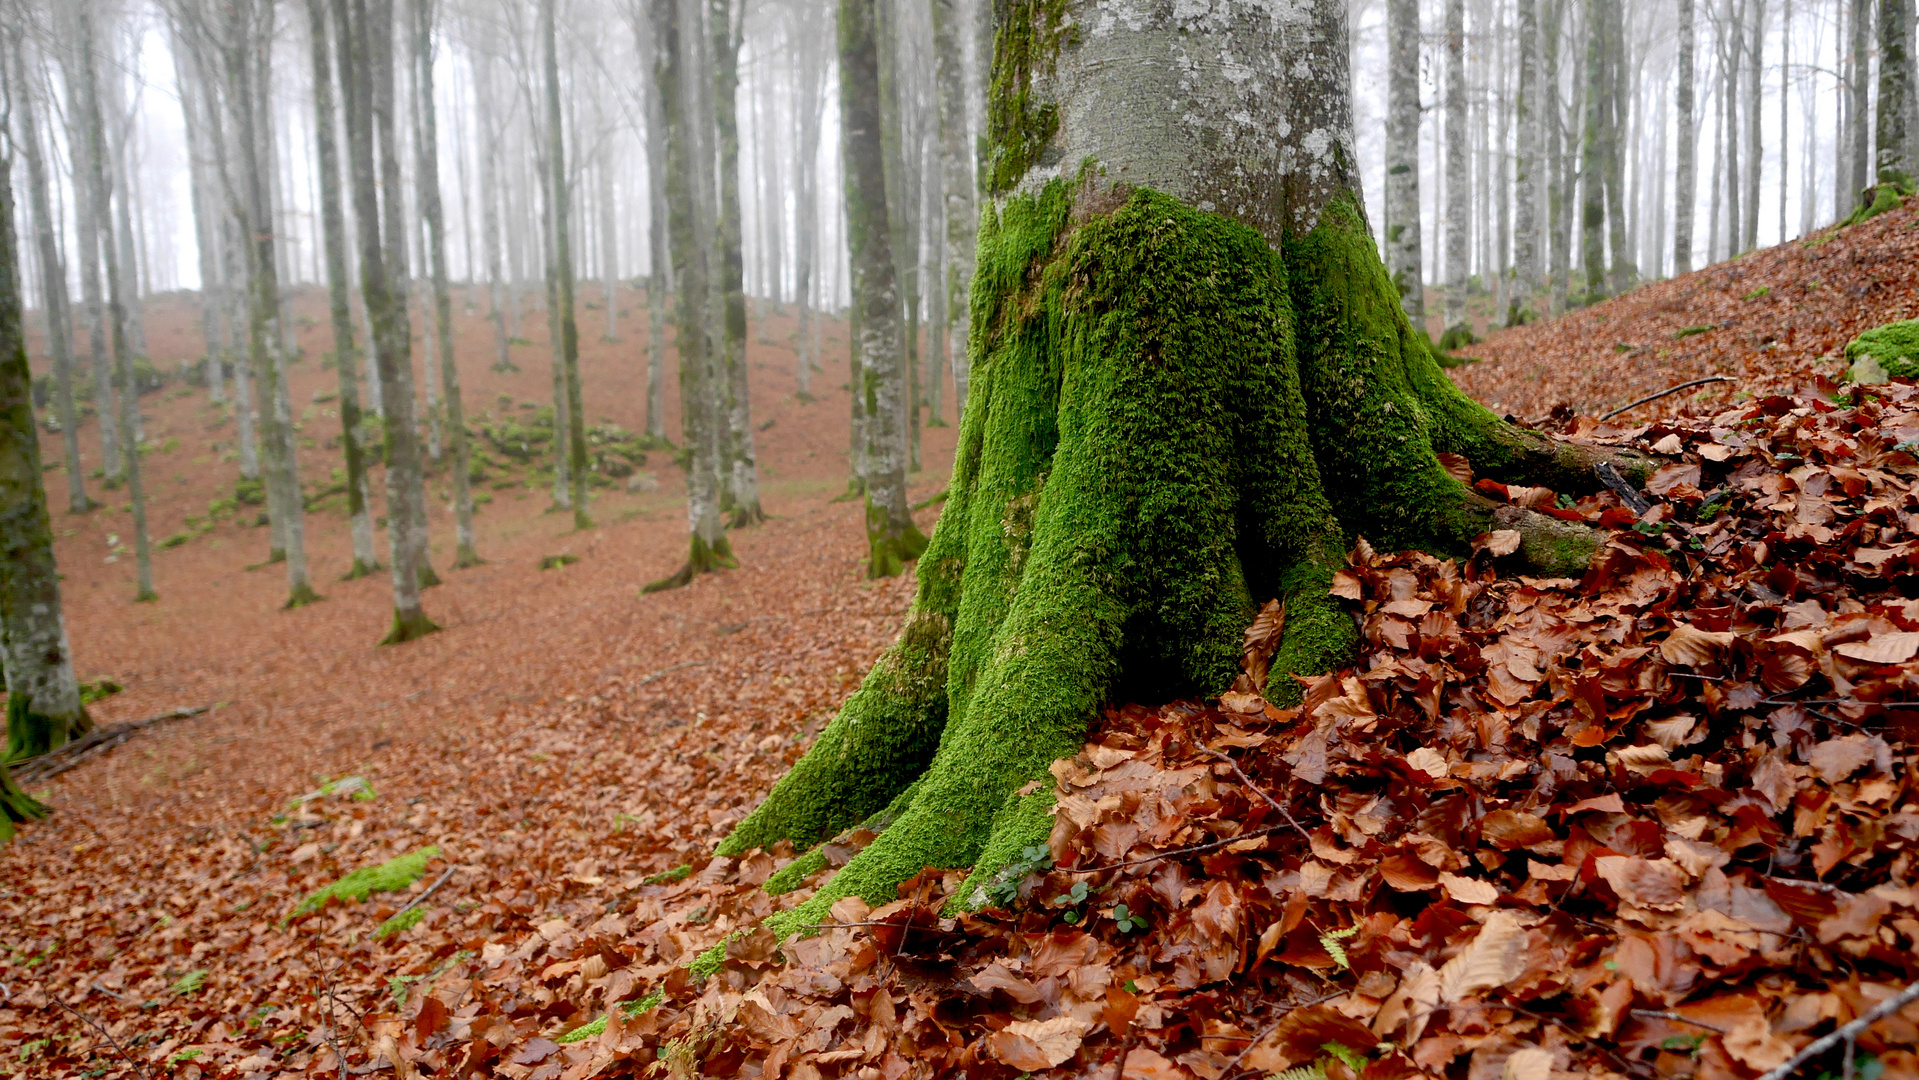 DISCOVER THE FOREST-6-WITH LUMIX GX7-CANSIGLIO/VENETO-ITALIA